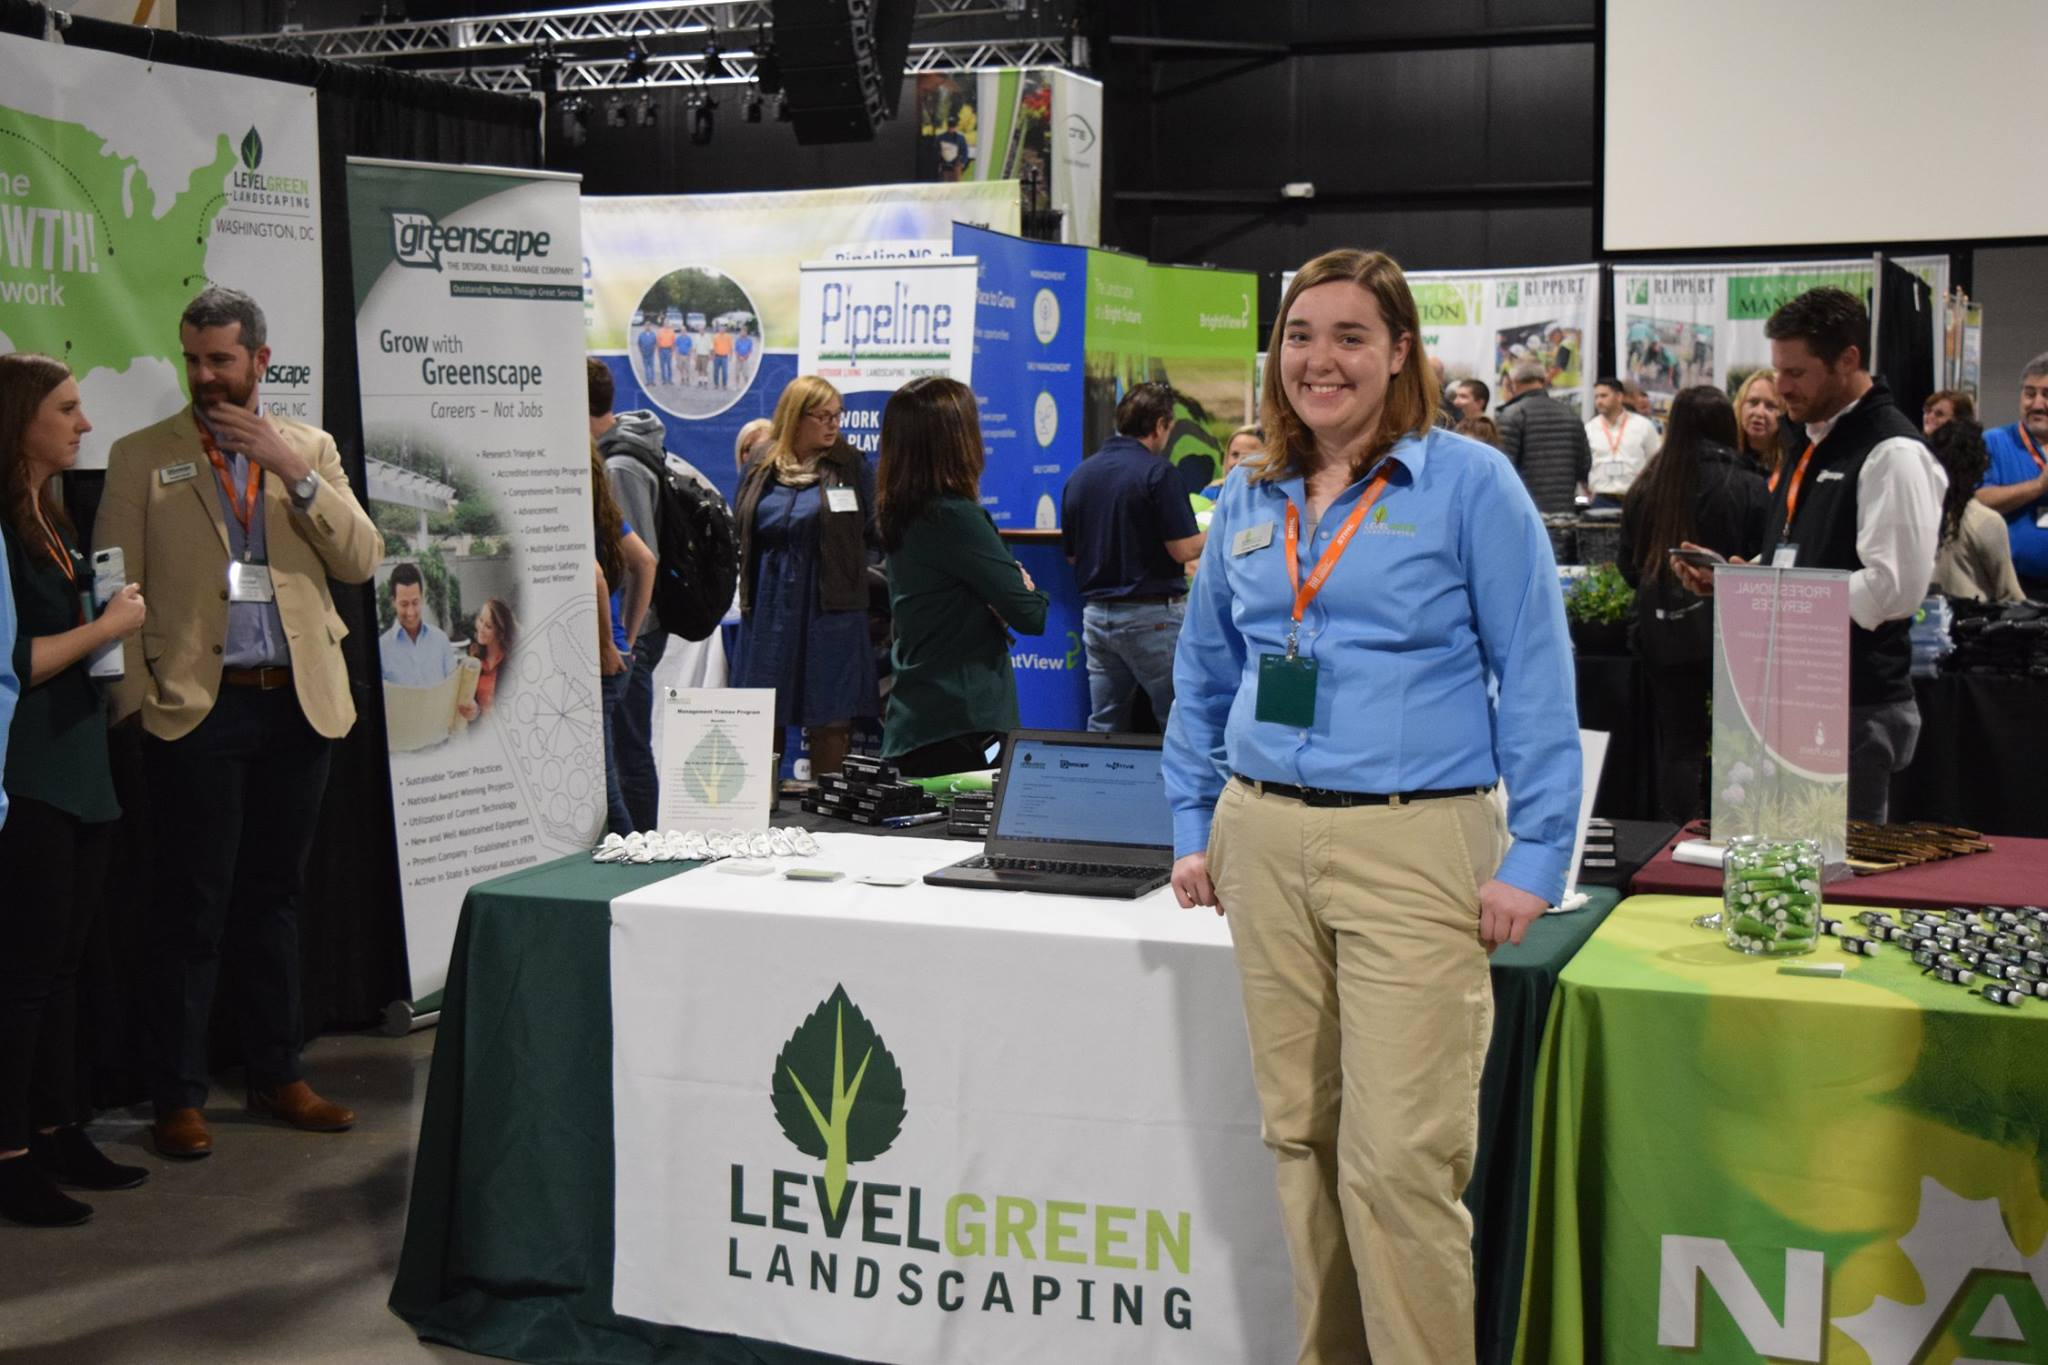 Level Green Landscaping at National Collegiate Landscape Competition